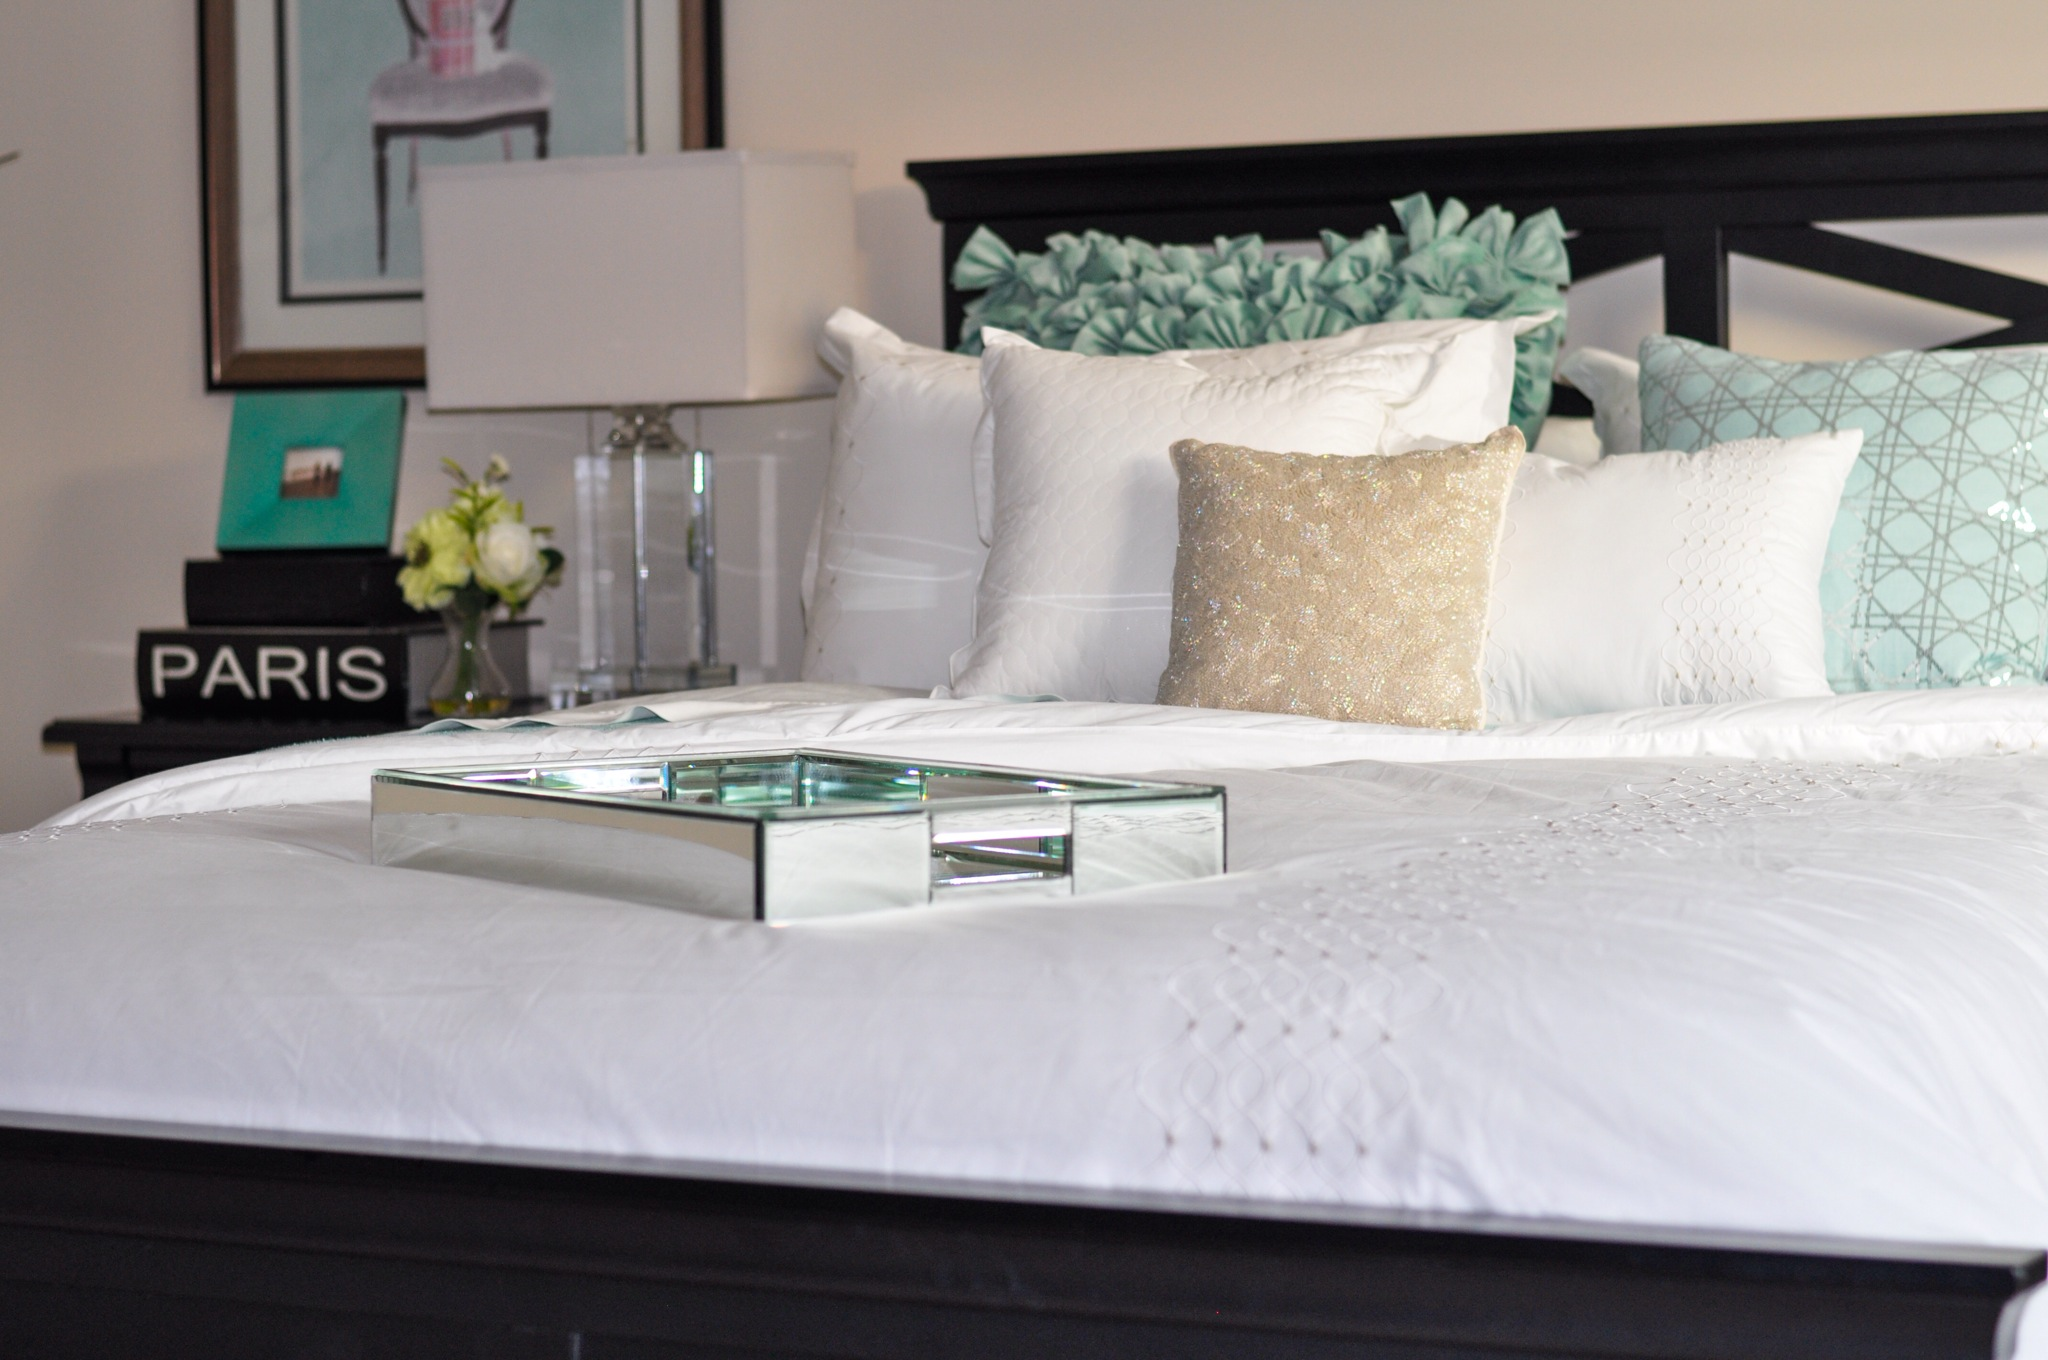 Simmons Beautyrest Recharge Shakespeare Firm Mattress Review Home Goods Bedding. . Full Size Of Bedroomhome Goods Rugs ...